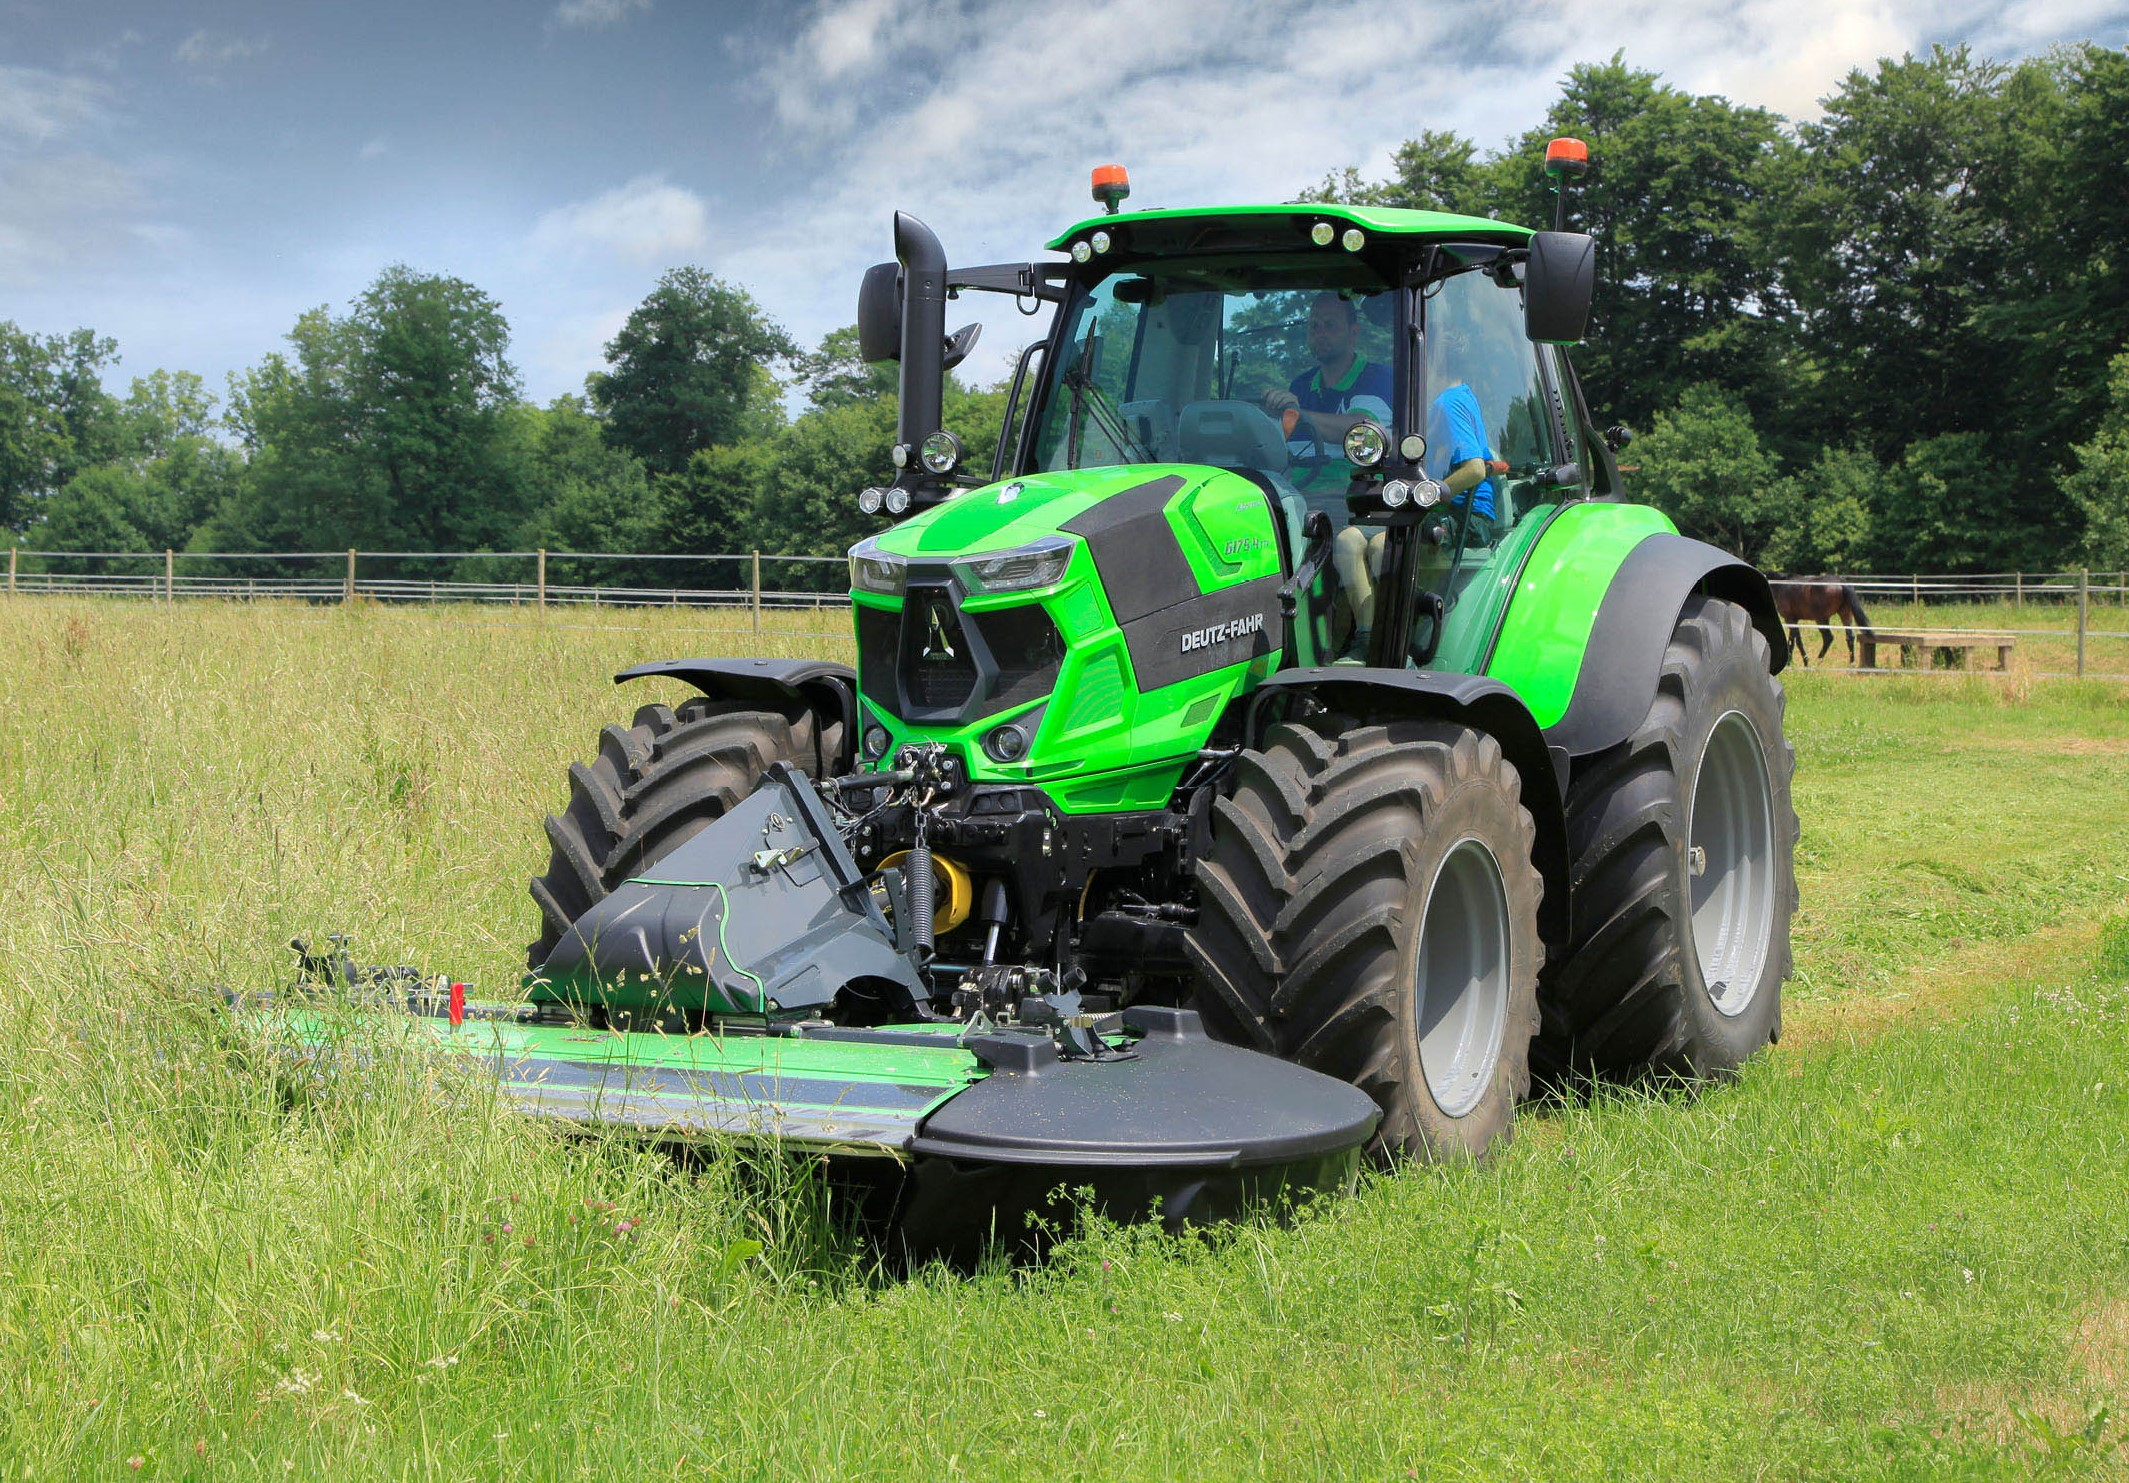 Manual Transmission >> Deutz-Fahr adds new beefy, 4-cylinder tractors to its line-up - Agriland